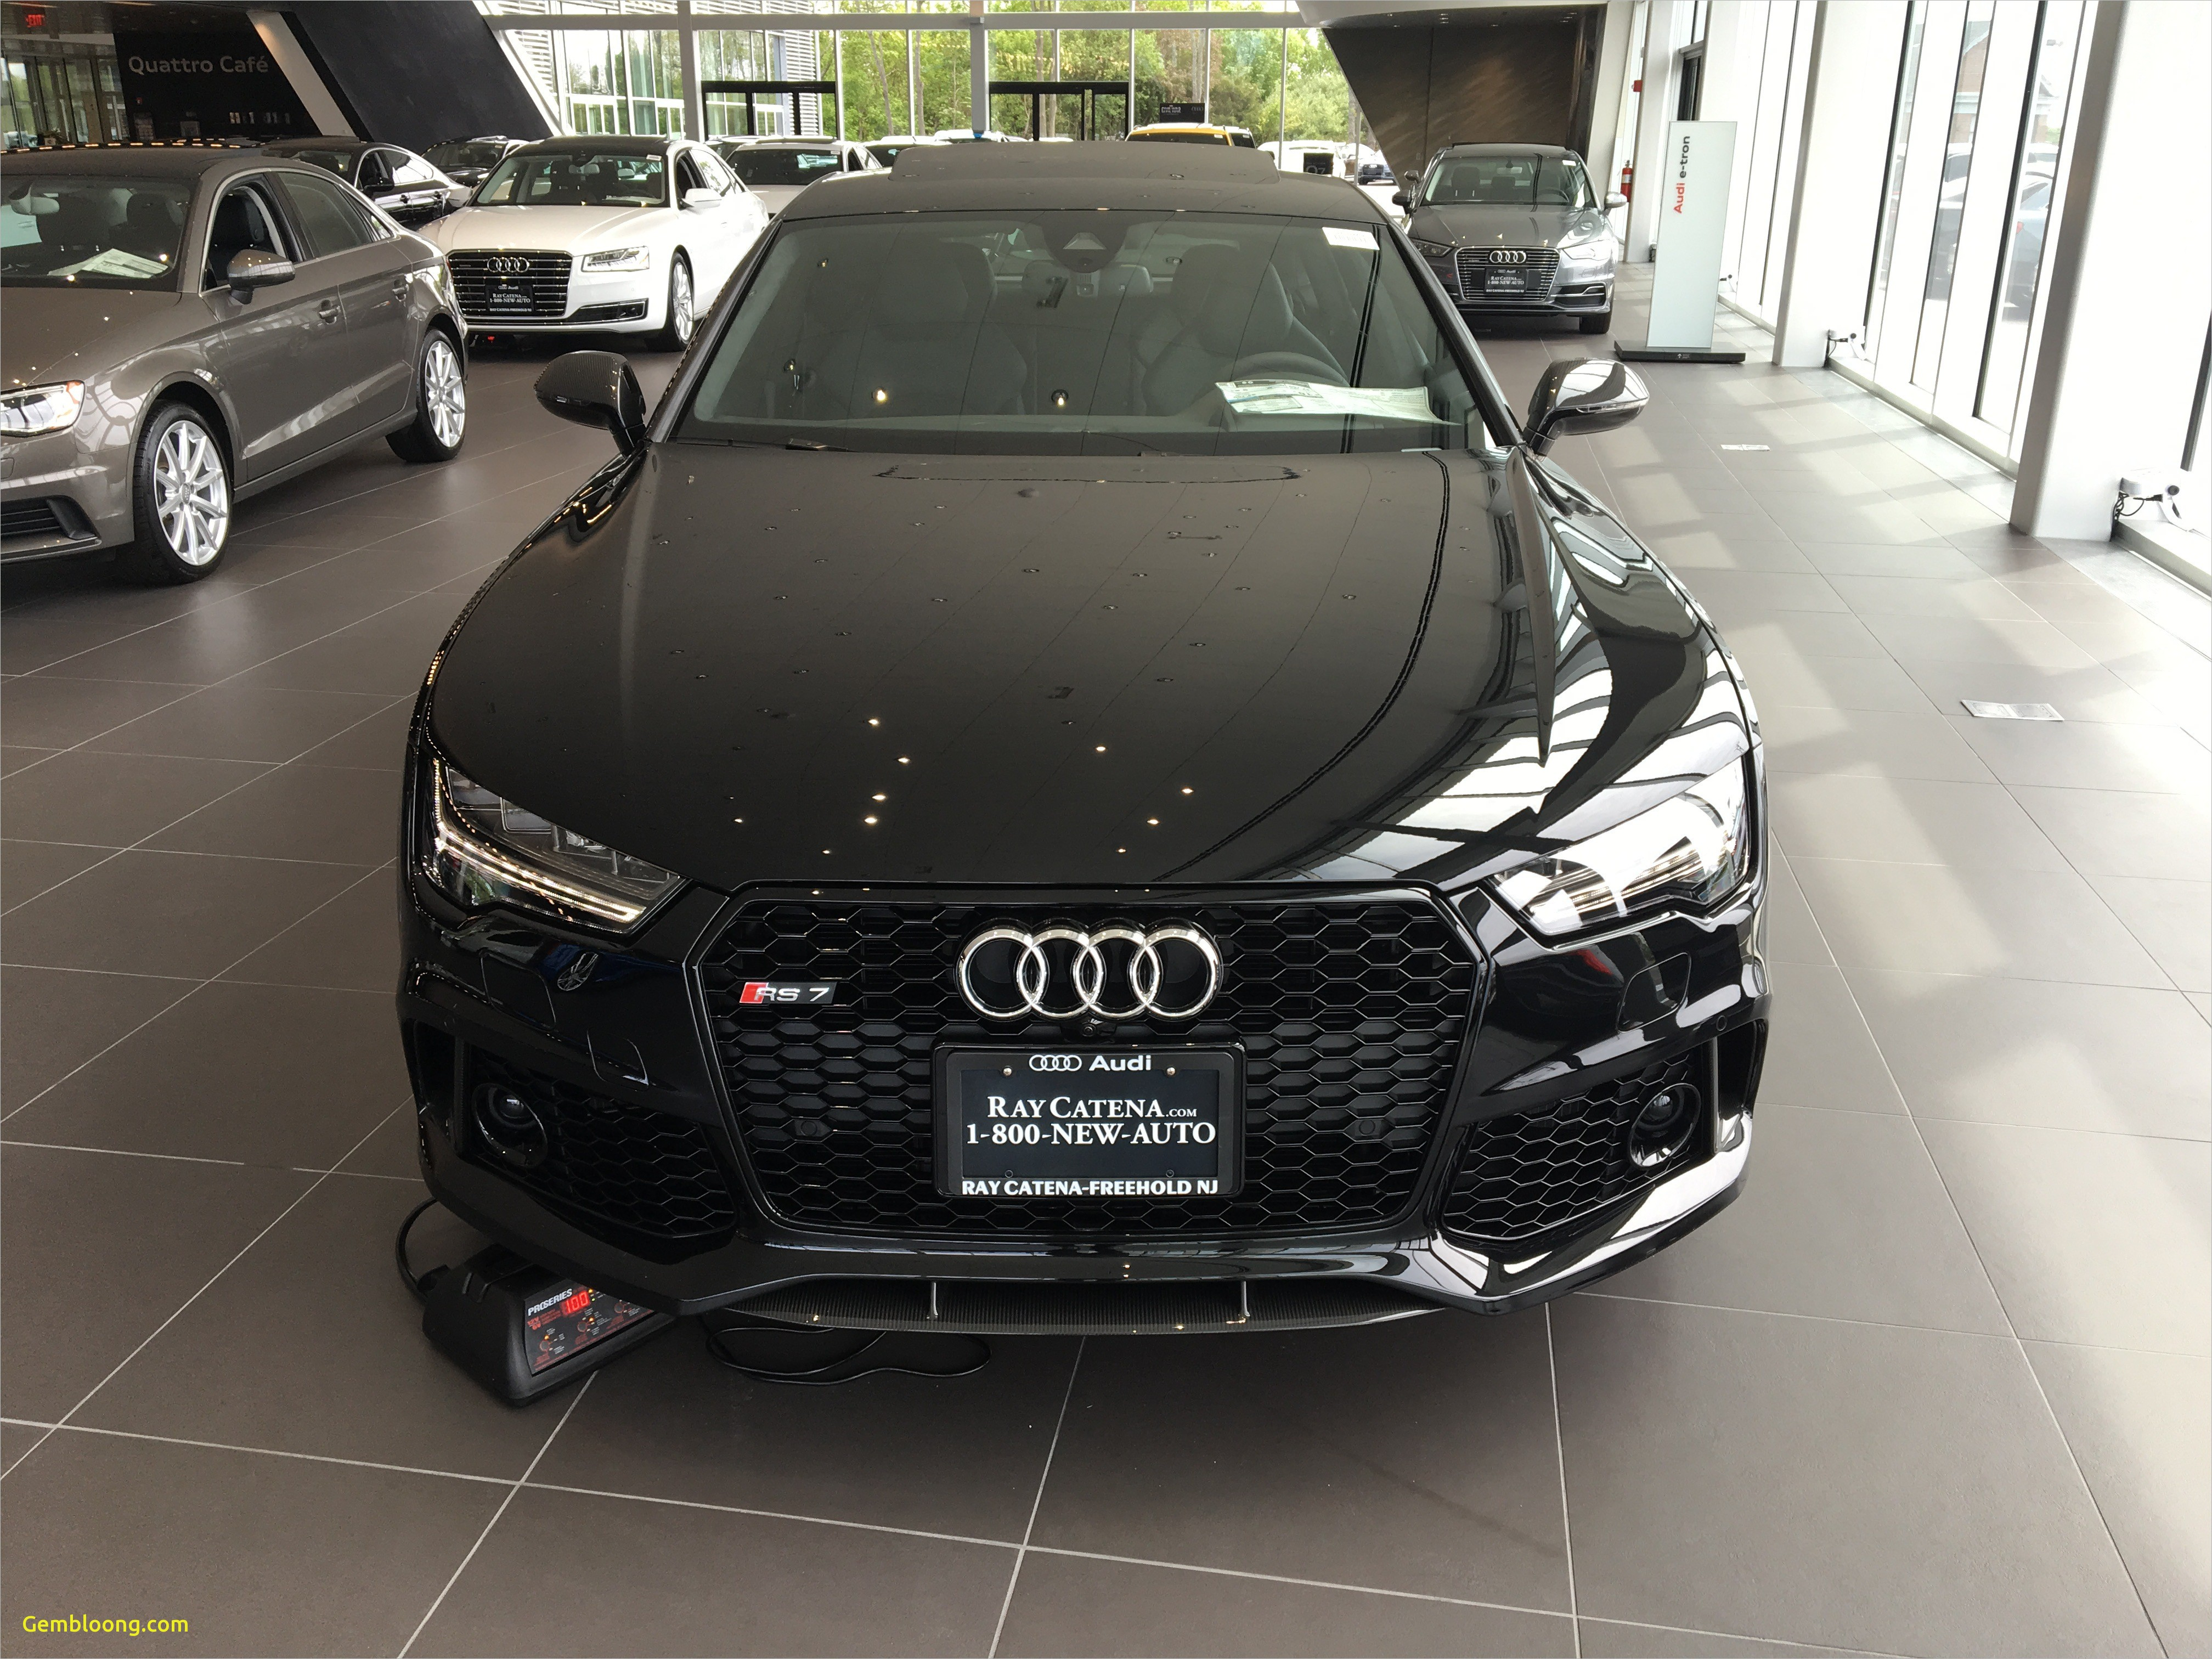 Cars for Sale Near Me for Under 3000 New Inspirational Cars for Sale Near Me Under 3000